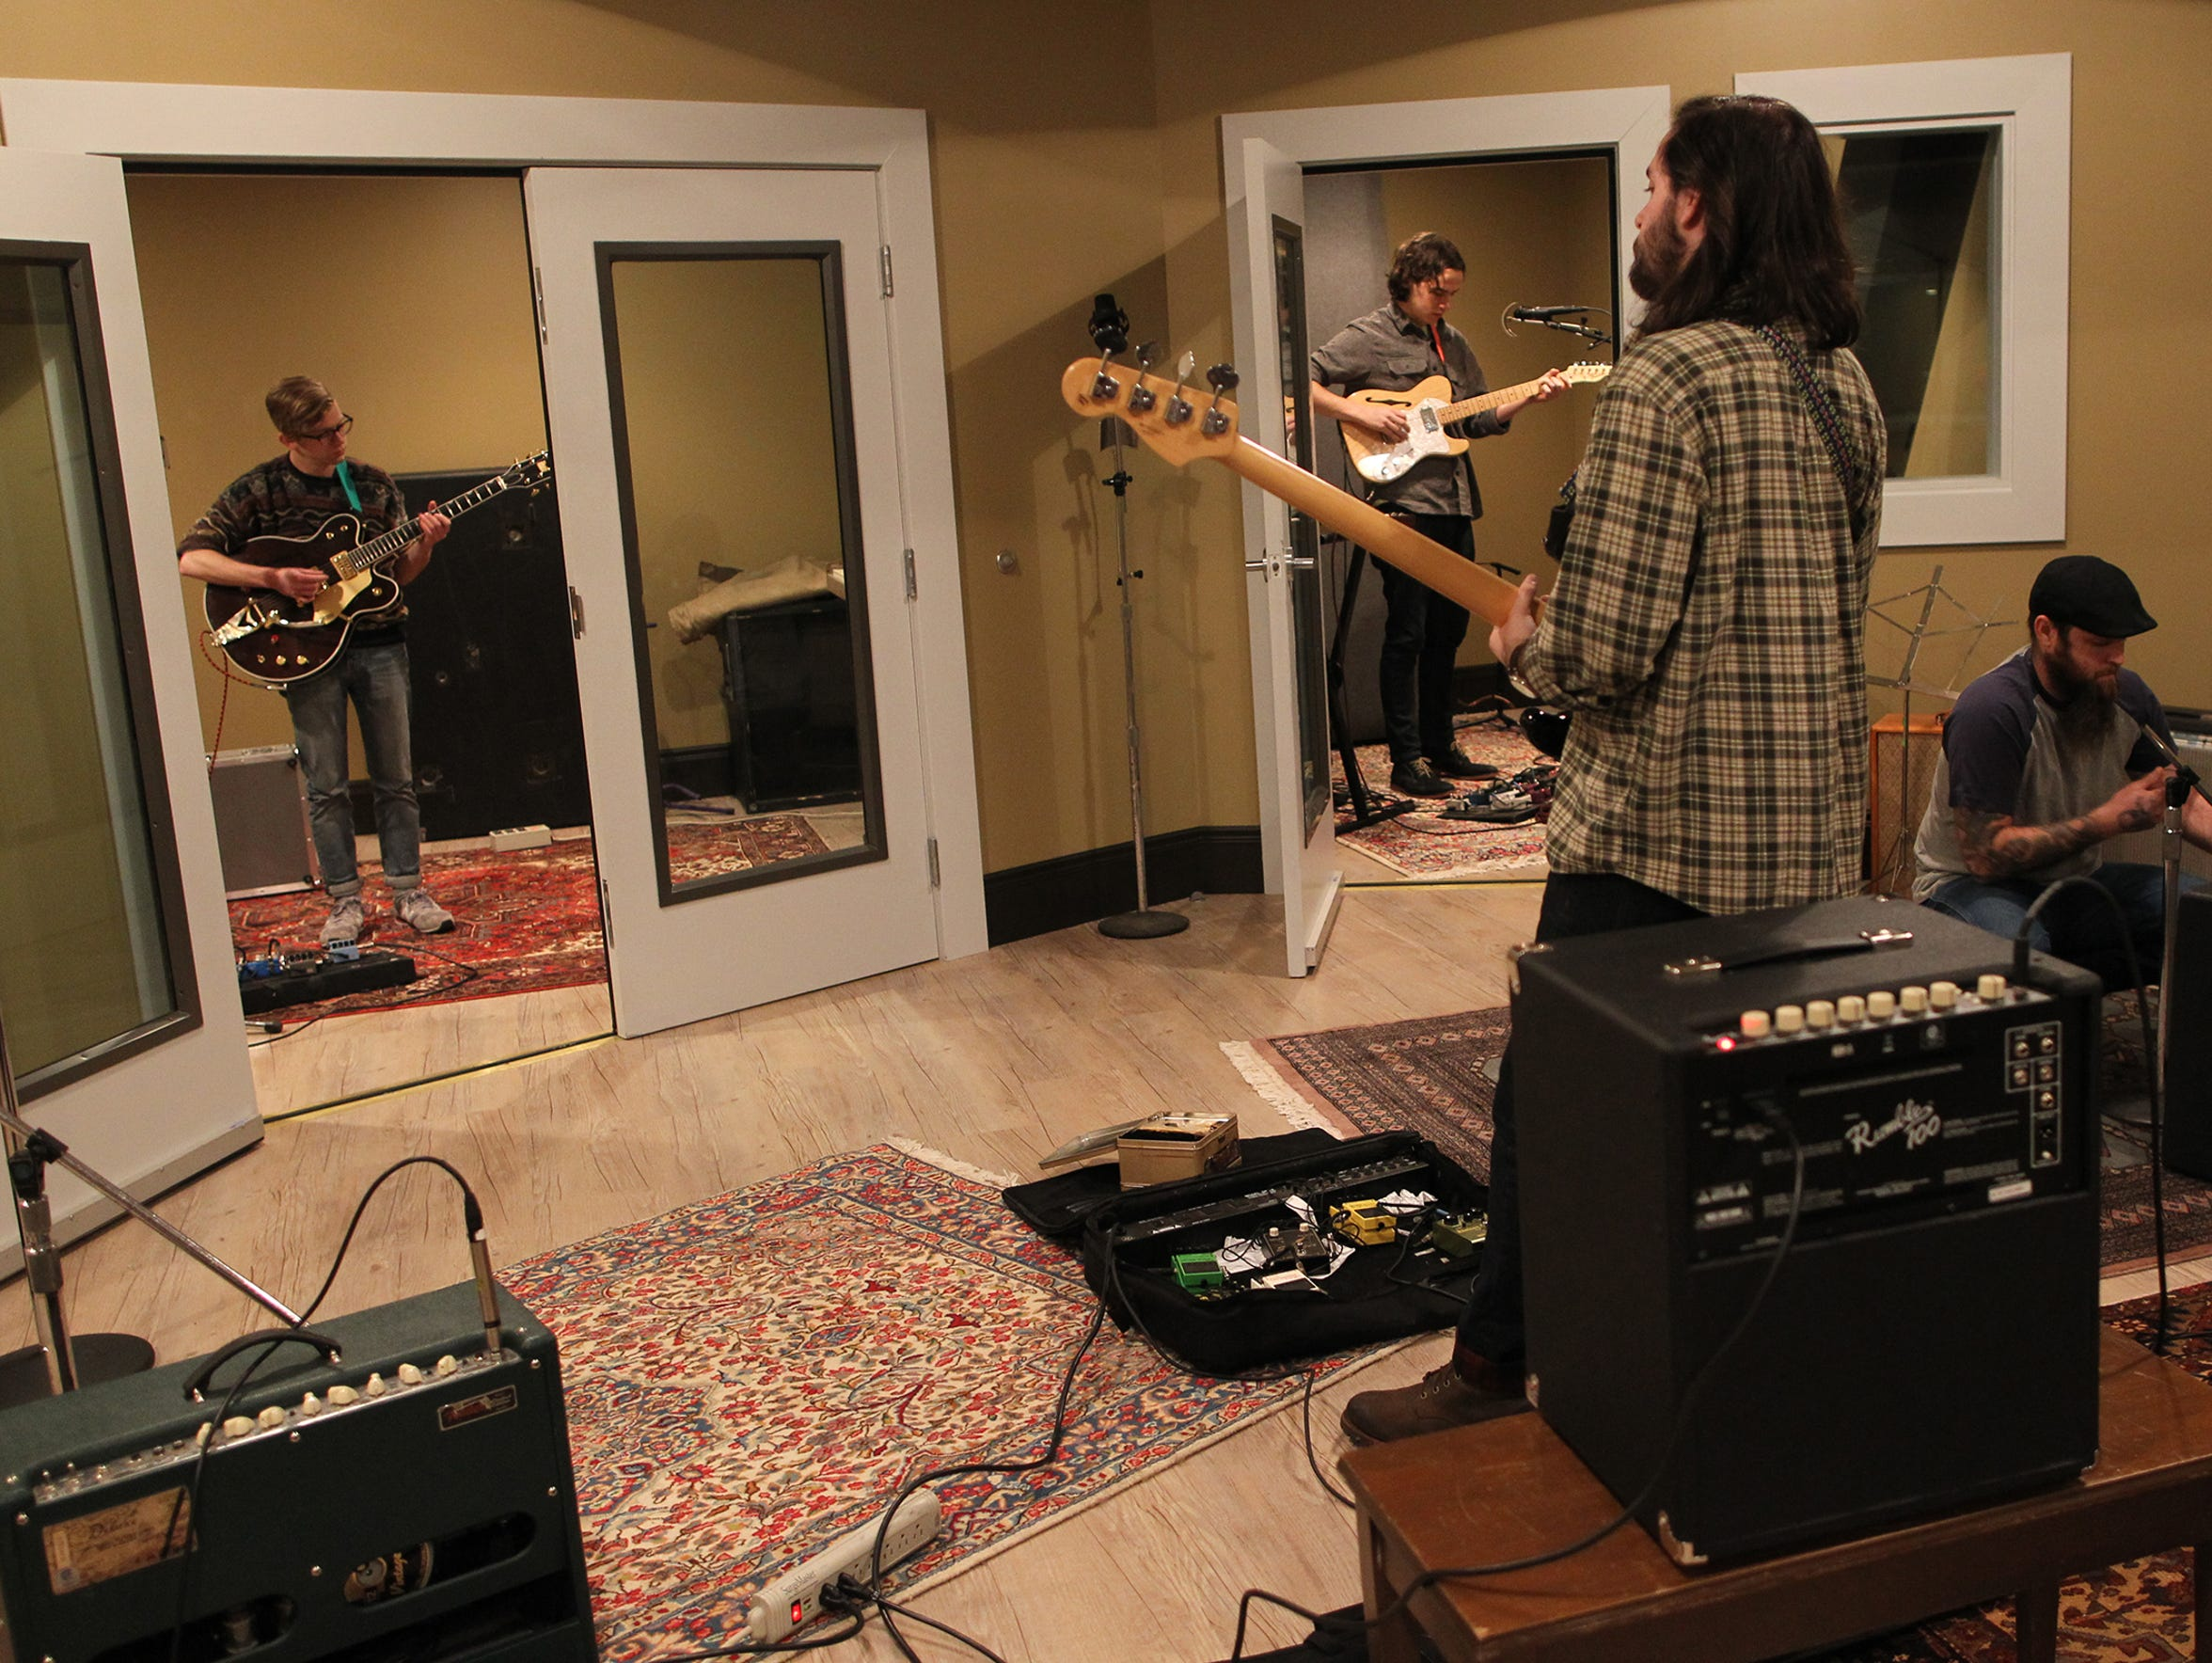 The Nashville-based Keeps unload their gear before